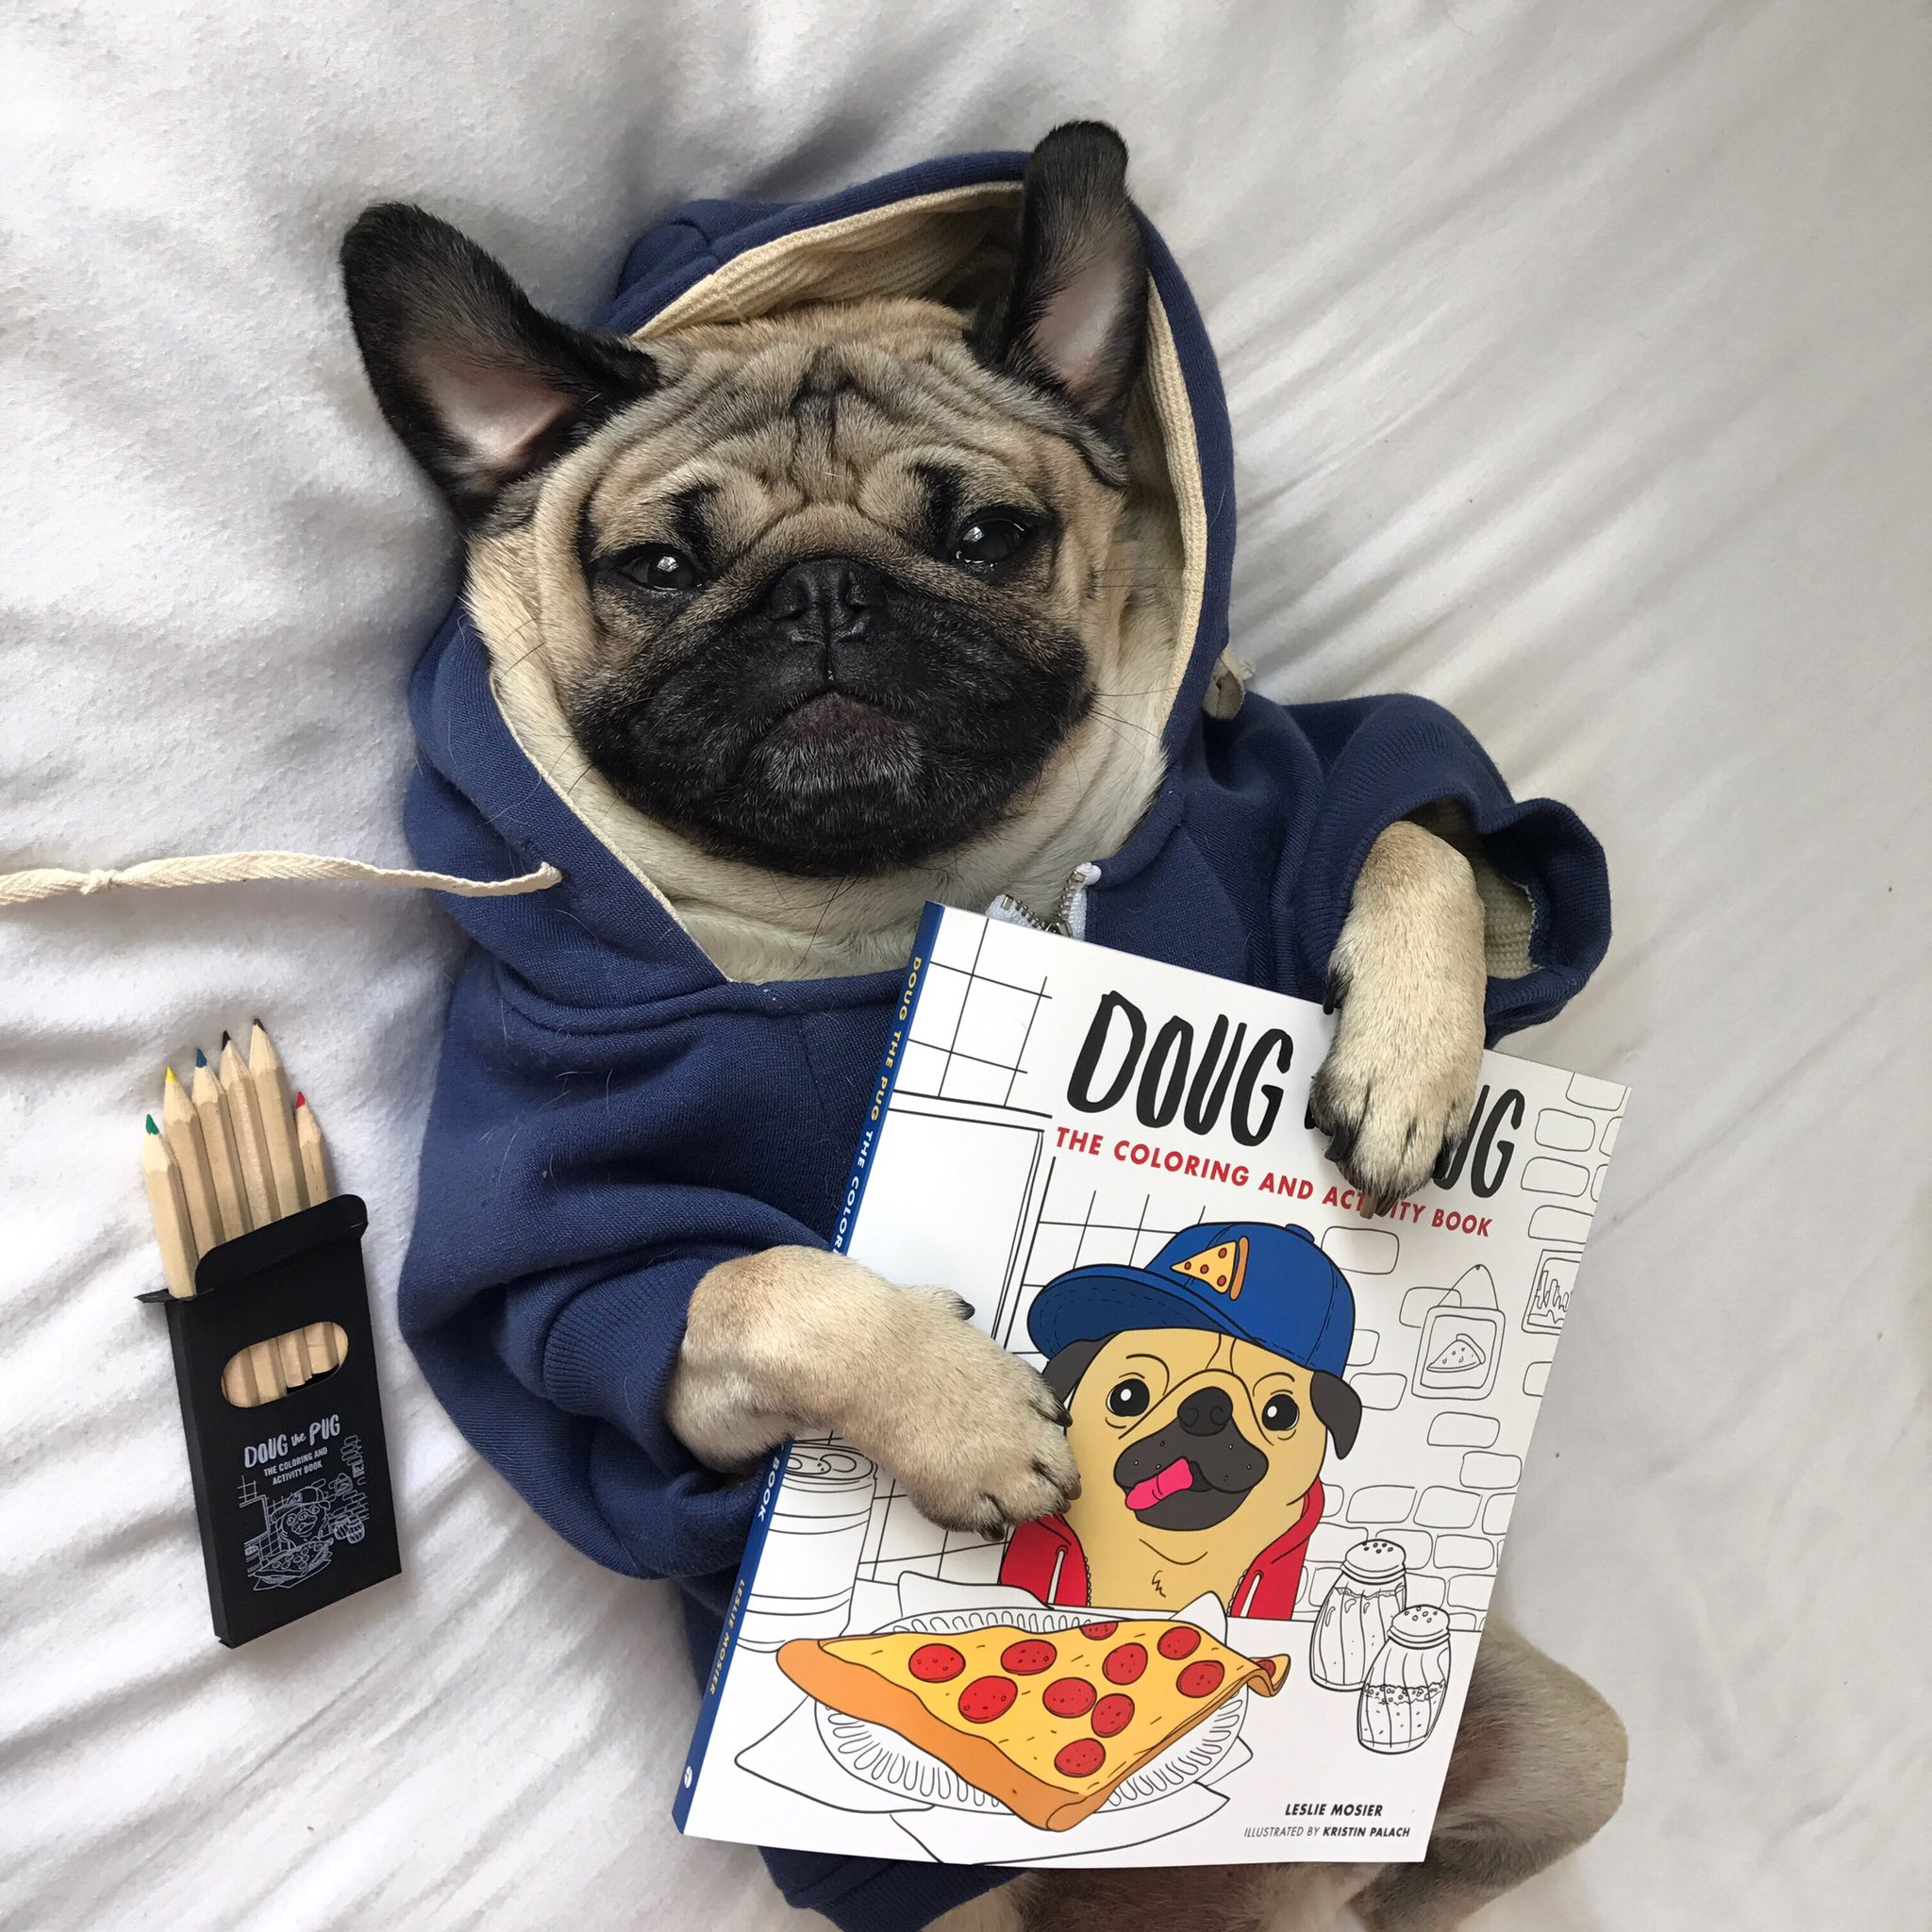 Doug The Pug On Twitter Quot The Coloring Book U Have Been